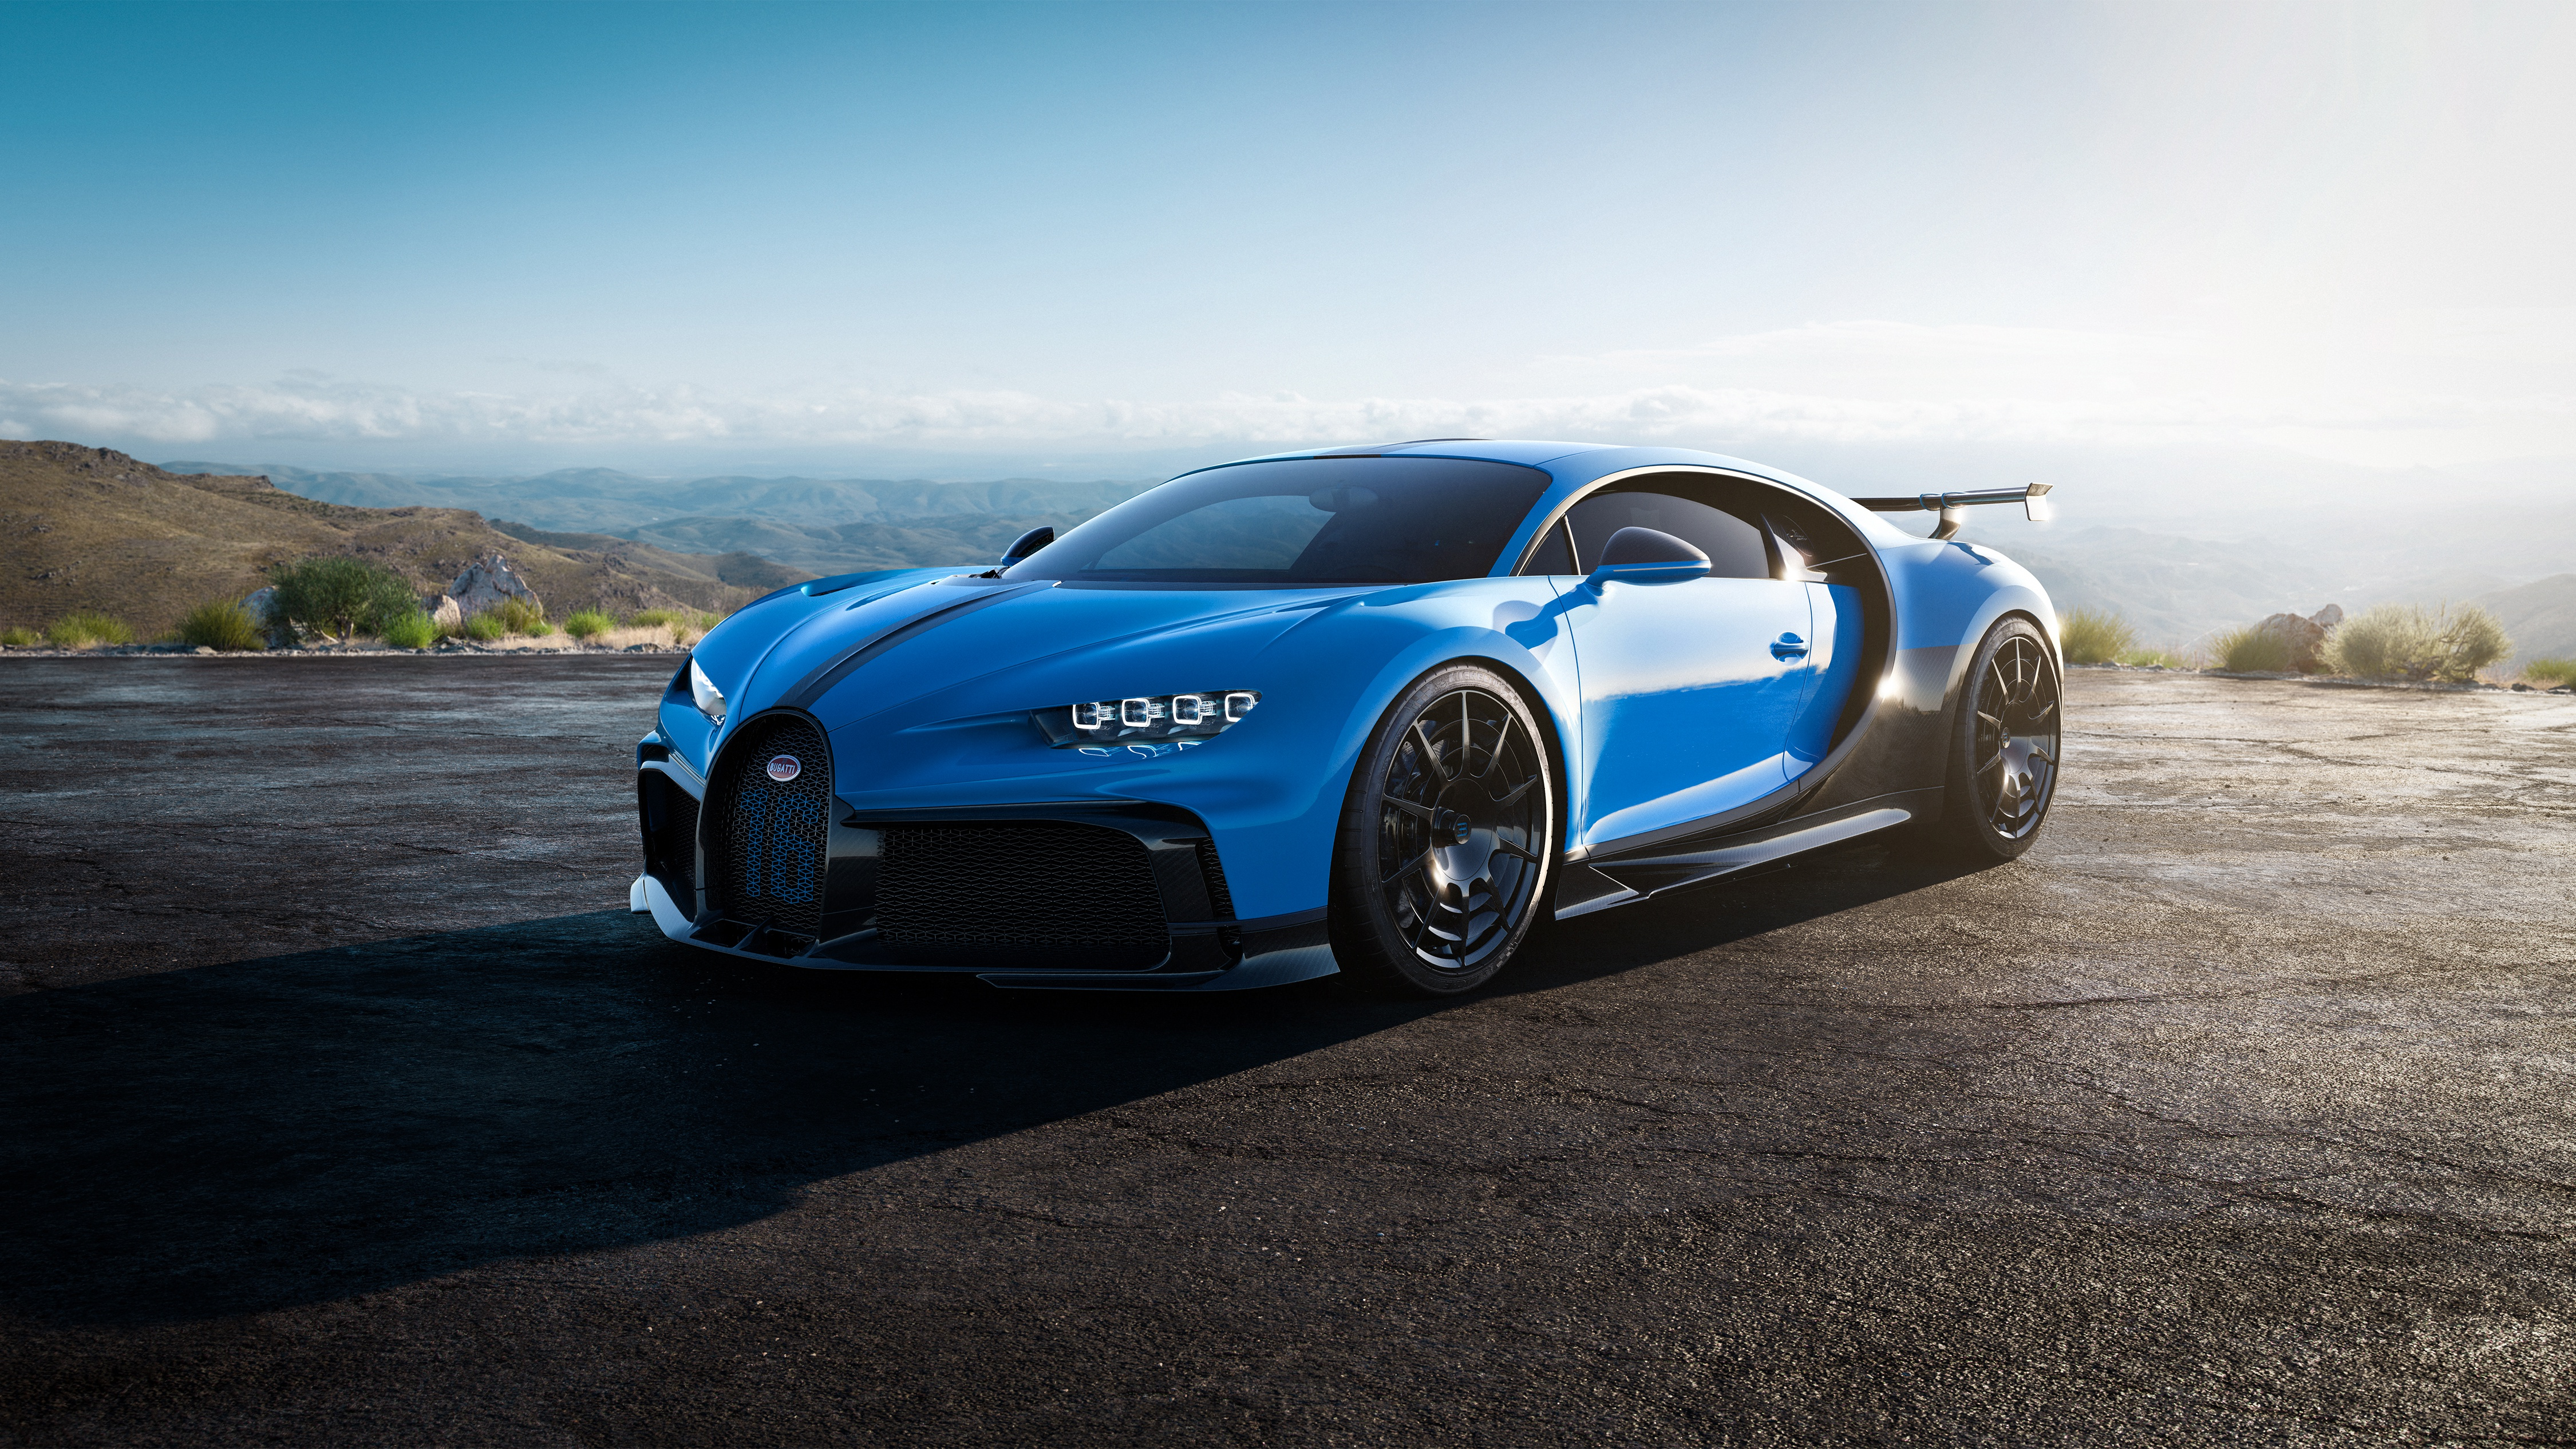 2560x1440 Bugatti Chiron 2020 1440p Resolution Hd 4k Wallpapers Images Backgrounds Photos And Pictures